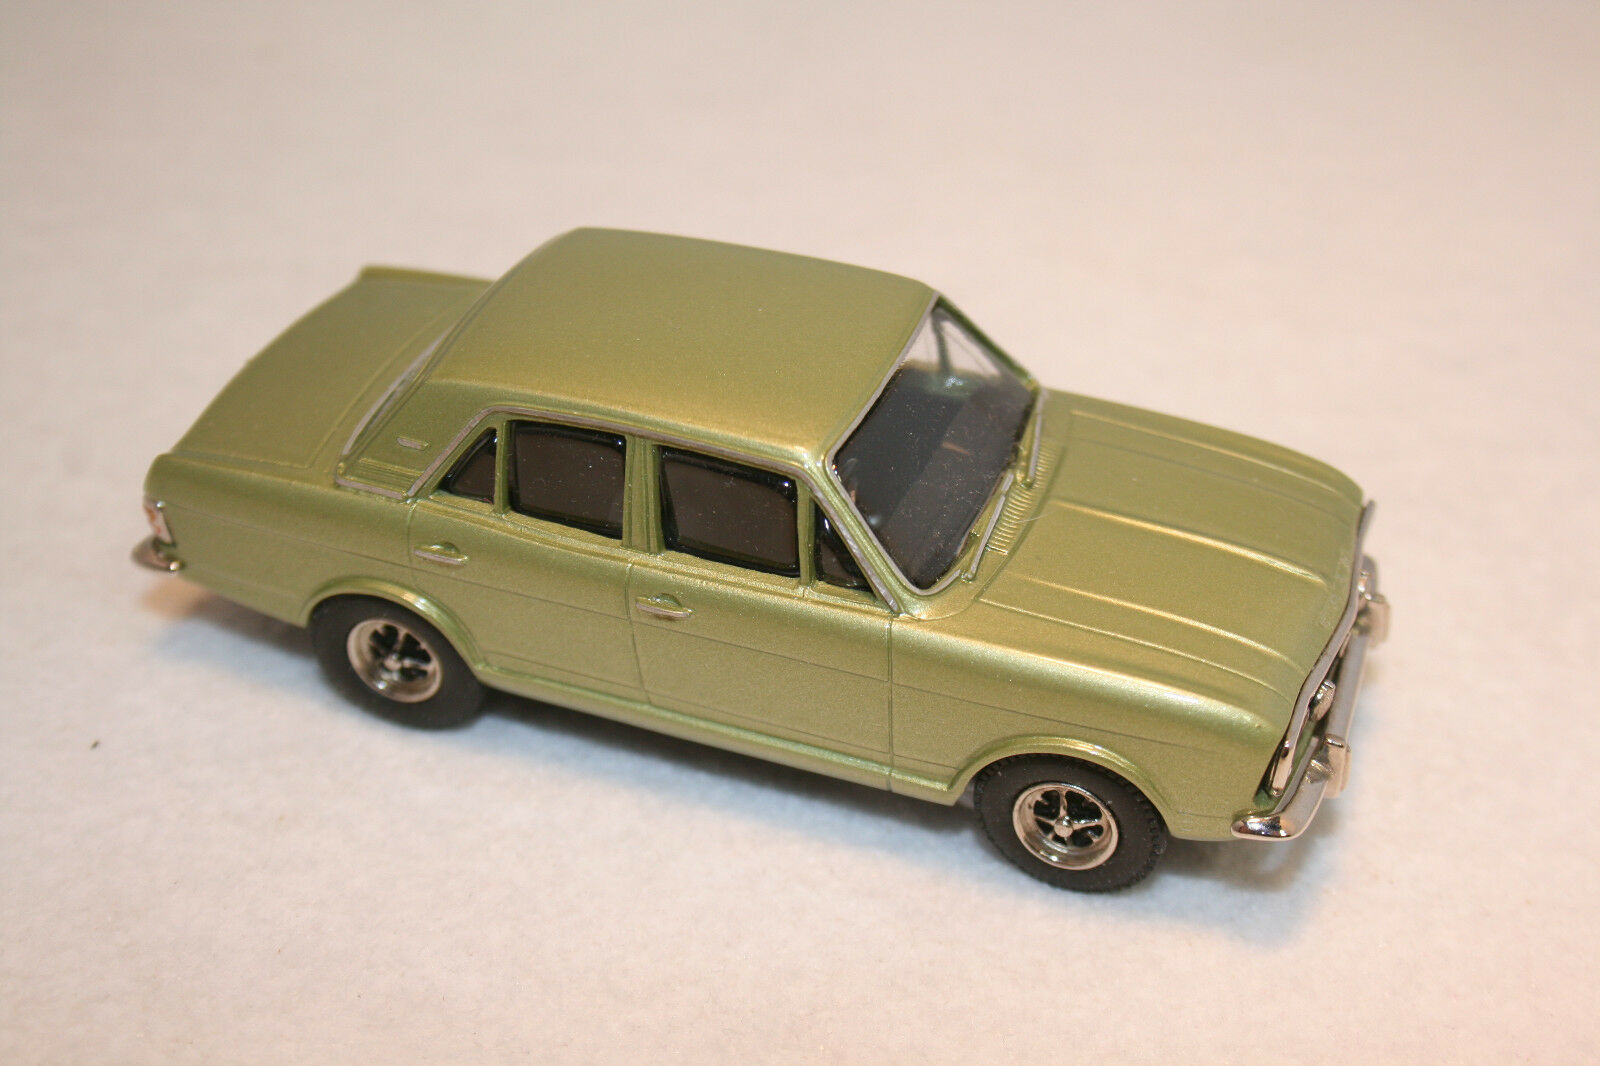 GTA PATHFINDER Modèle Classique Voitures. FORD 1600E. NEW Comme neuf boxed